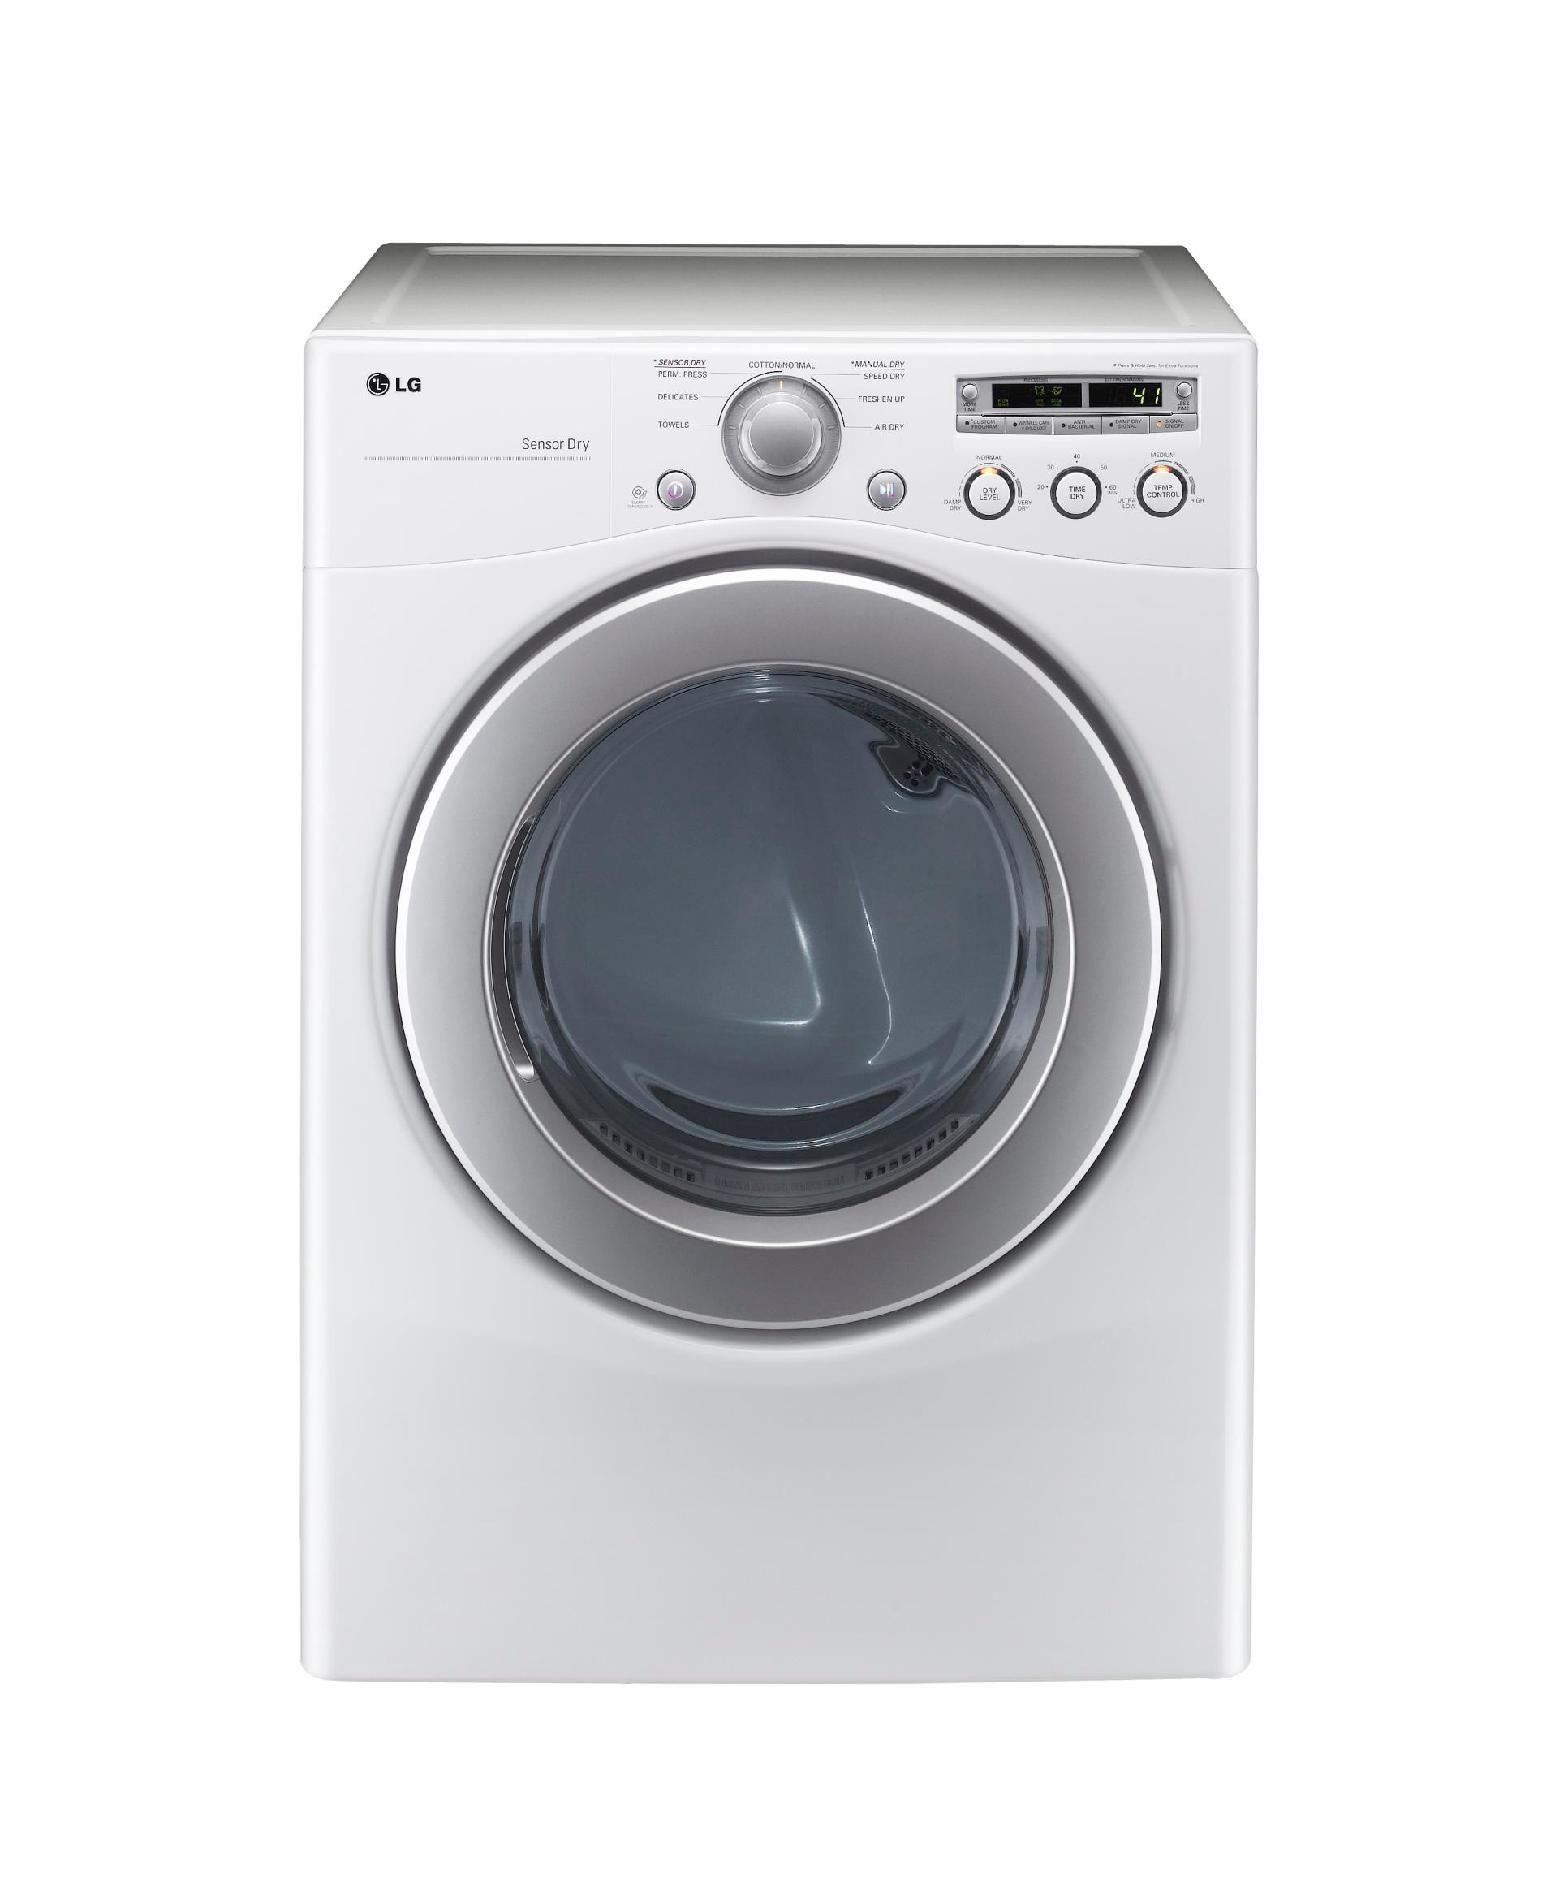 7.1 cu. ft. Extra Large Capacity Gas Dryer with Sensor Dry - White